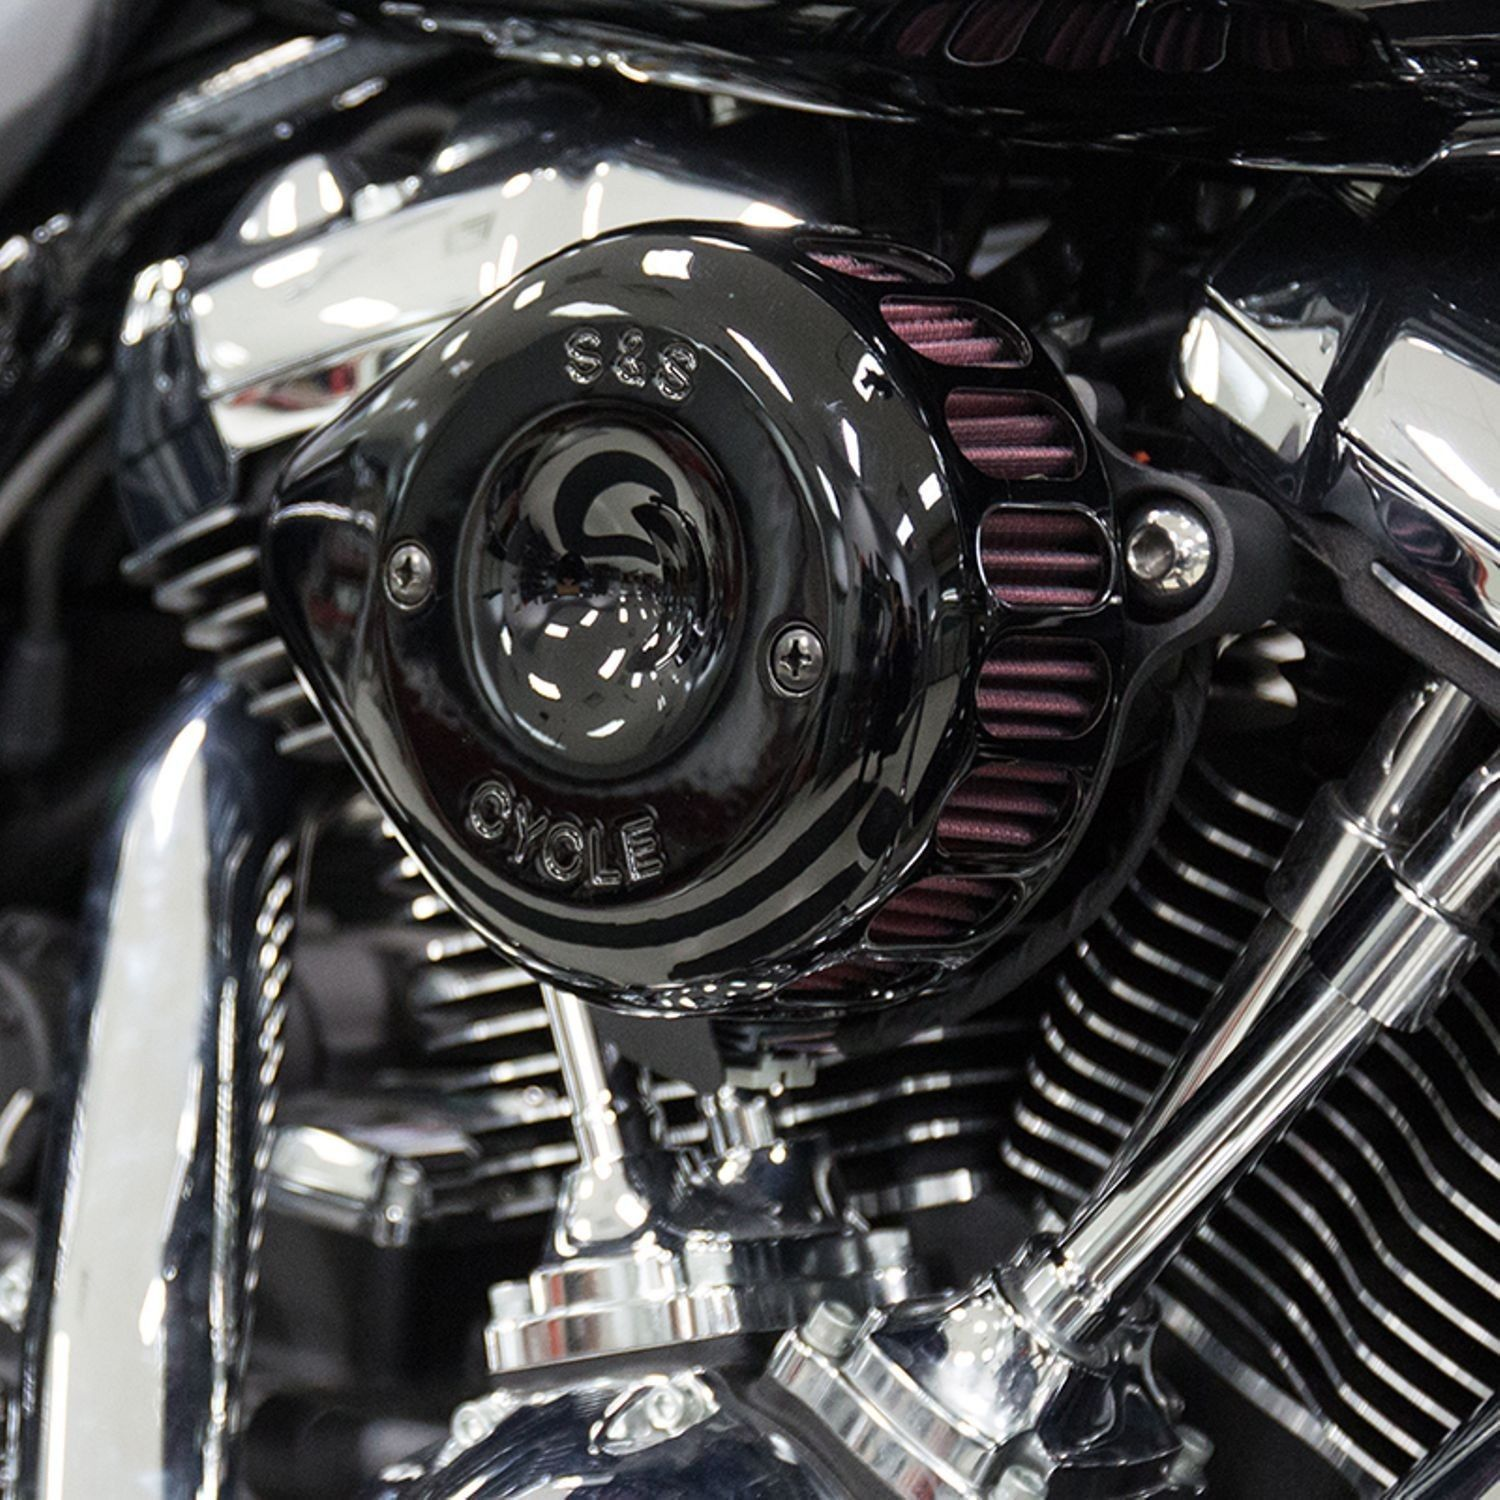 Harley S S Black Mini Teardrop Stealth Air Cleaner Kit For Harley Davidson M8 2017 Up Please Retweet Black Mini Air Cleaner Softail